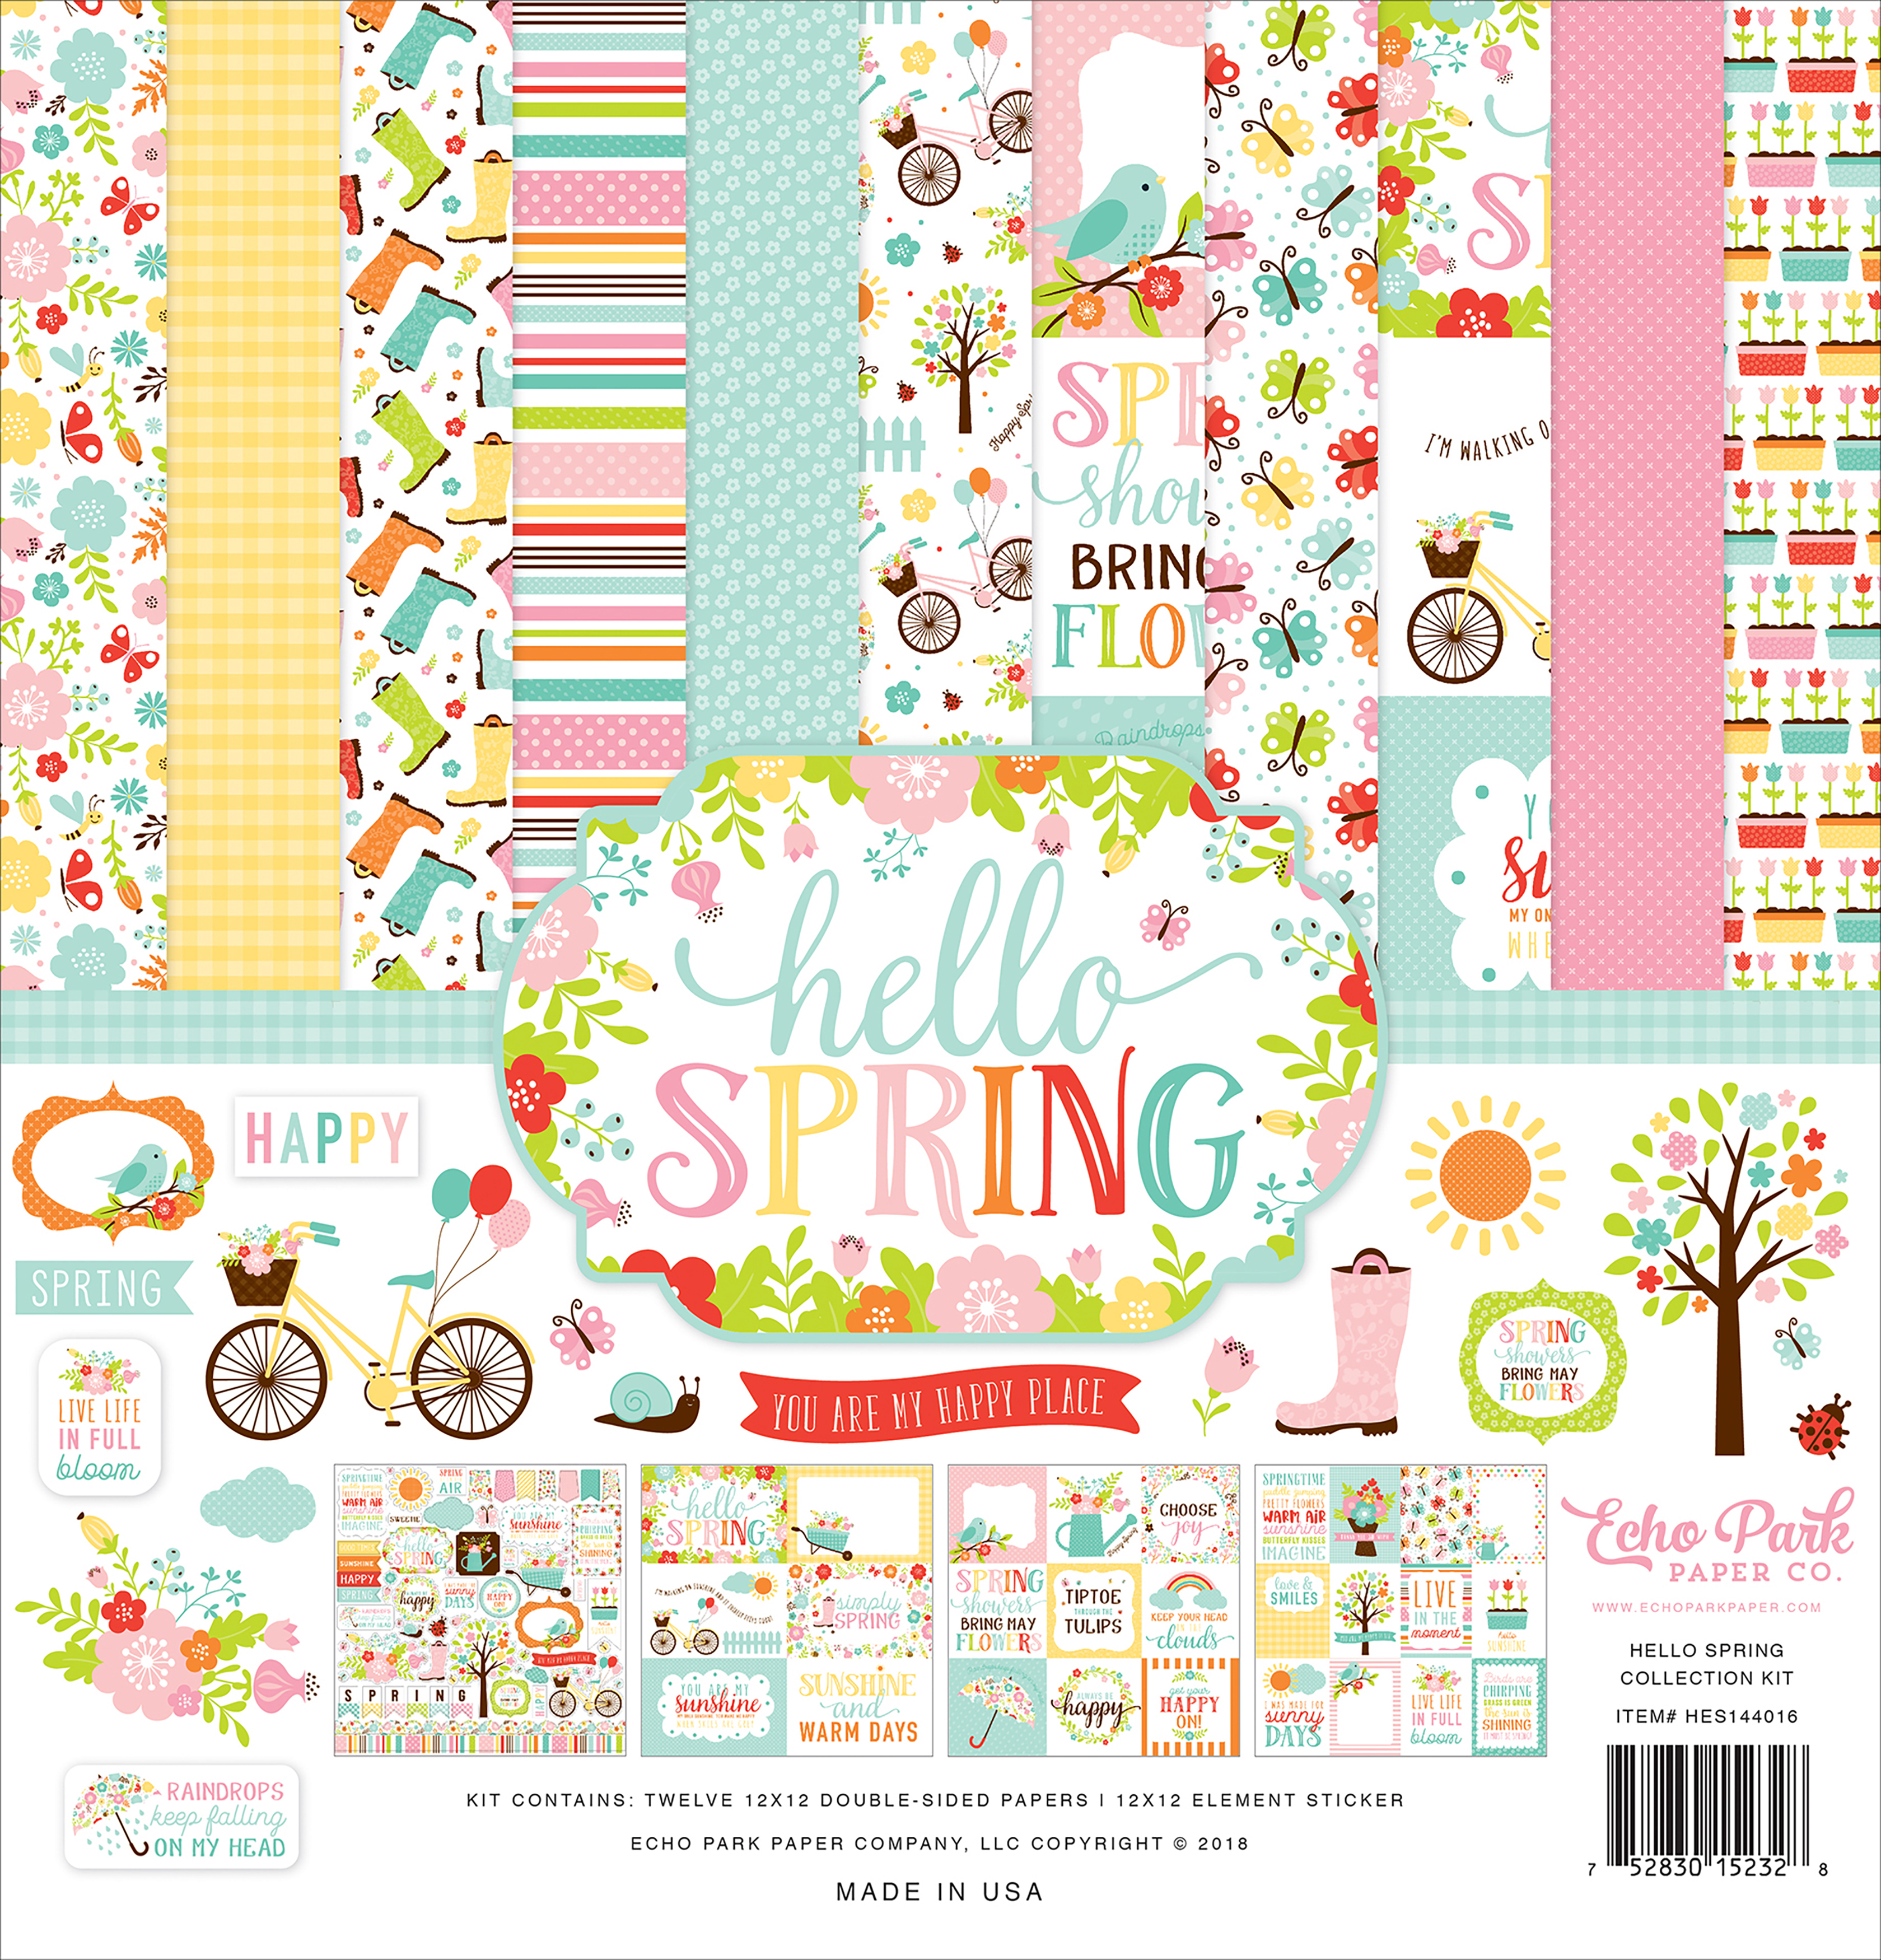 Echo Park Collection Kit 12X12-Hello Spring